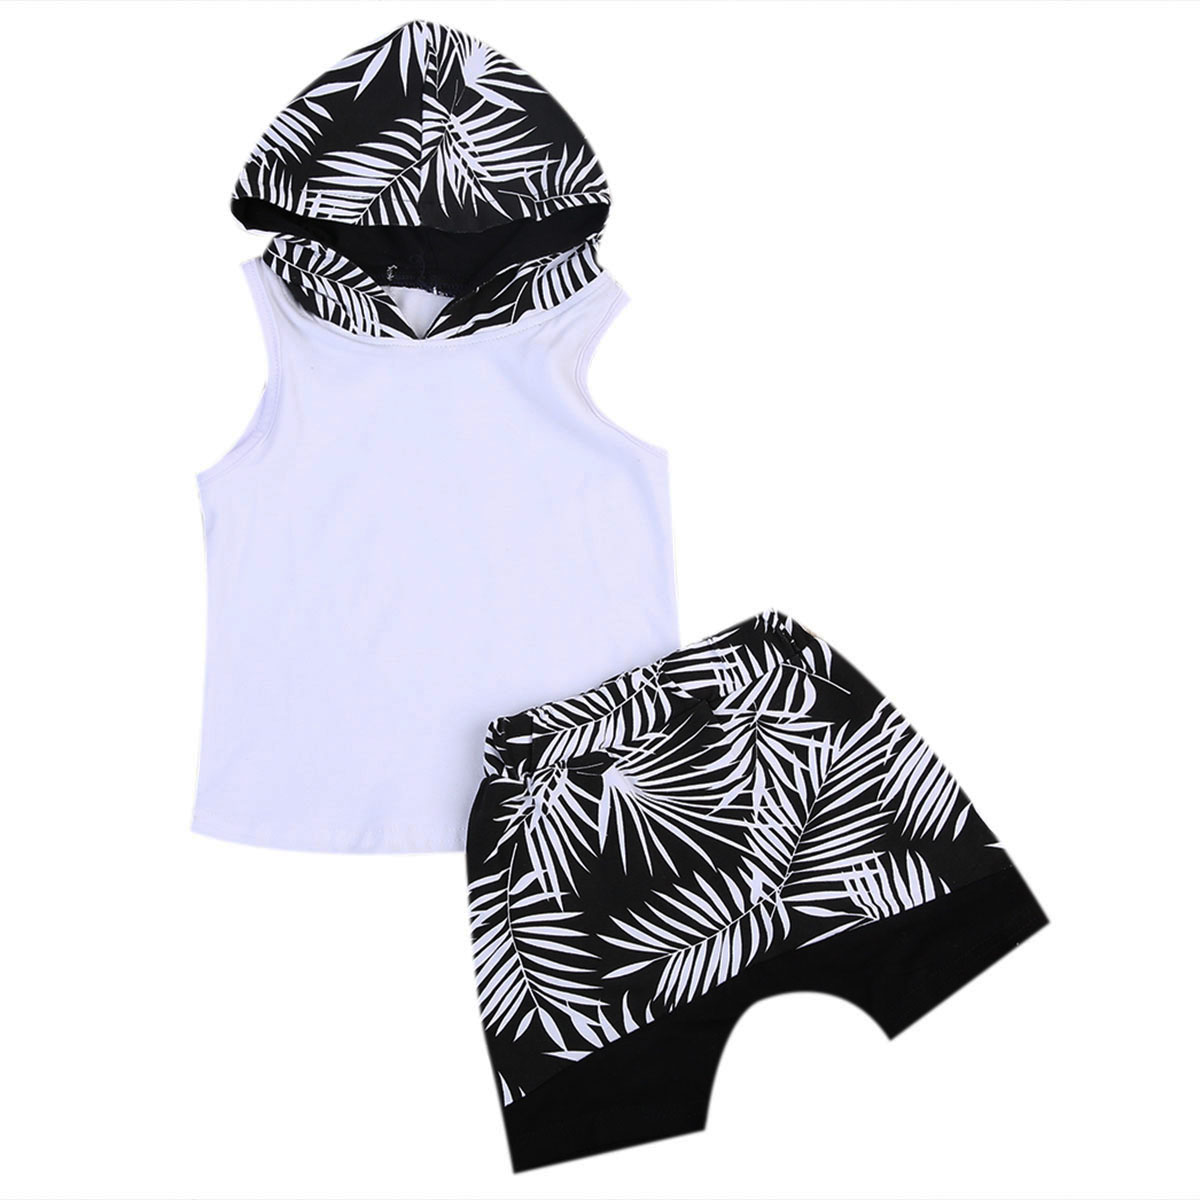 Newborn Kid Baby Boy Clothes Sleeveless Hooded Vest T-Shirt Tops+Shorts 2Pcs sets Kids Girls Summer Cotton Cool Fashion Suits diy electric heating warm handle grip for motorcycle black 2 pcs